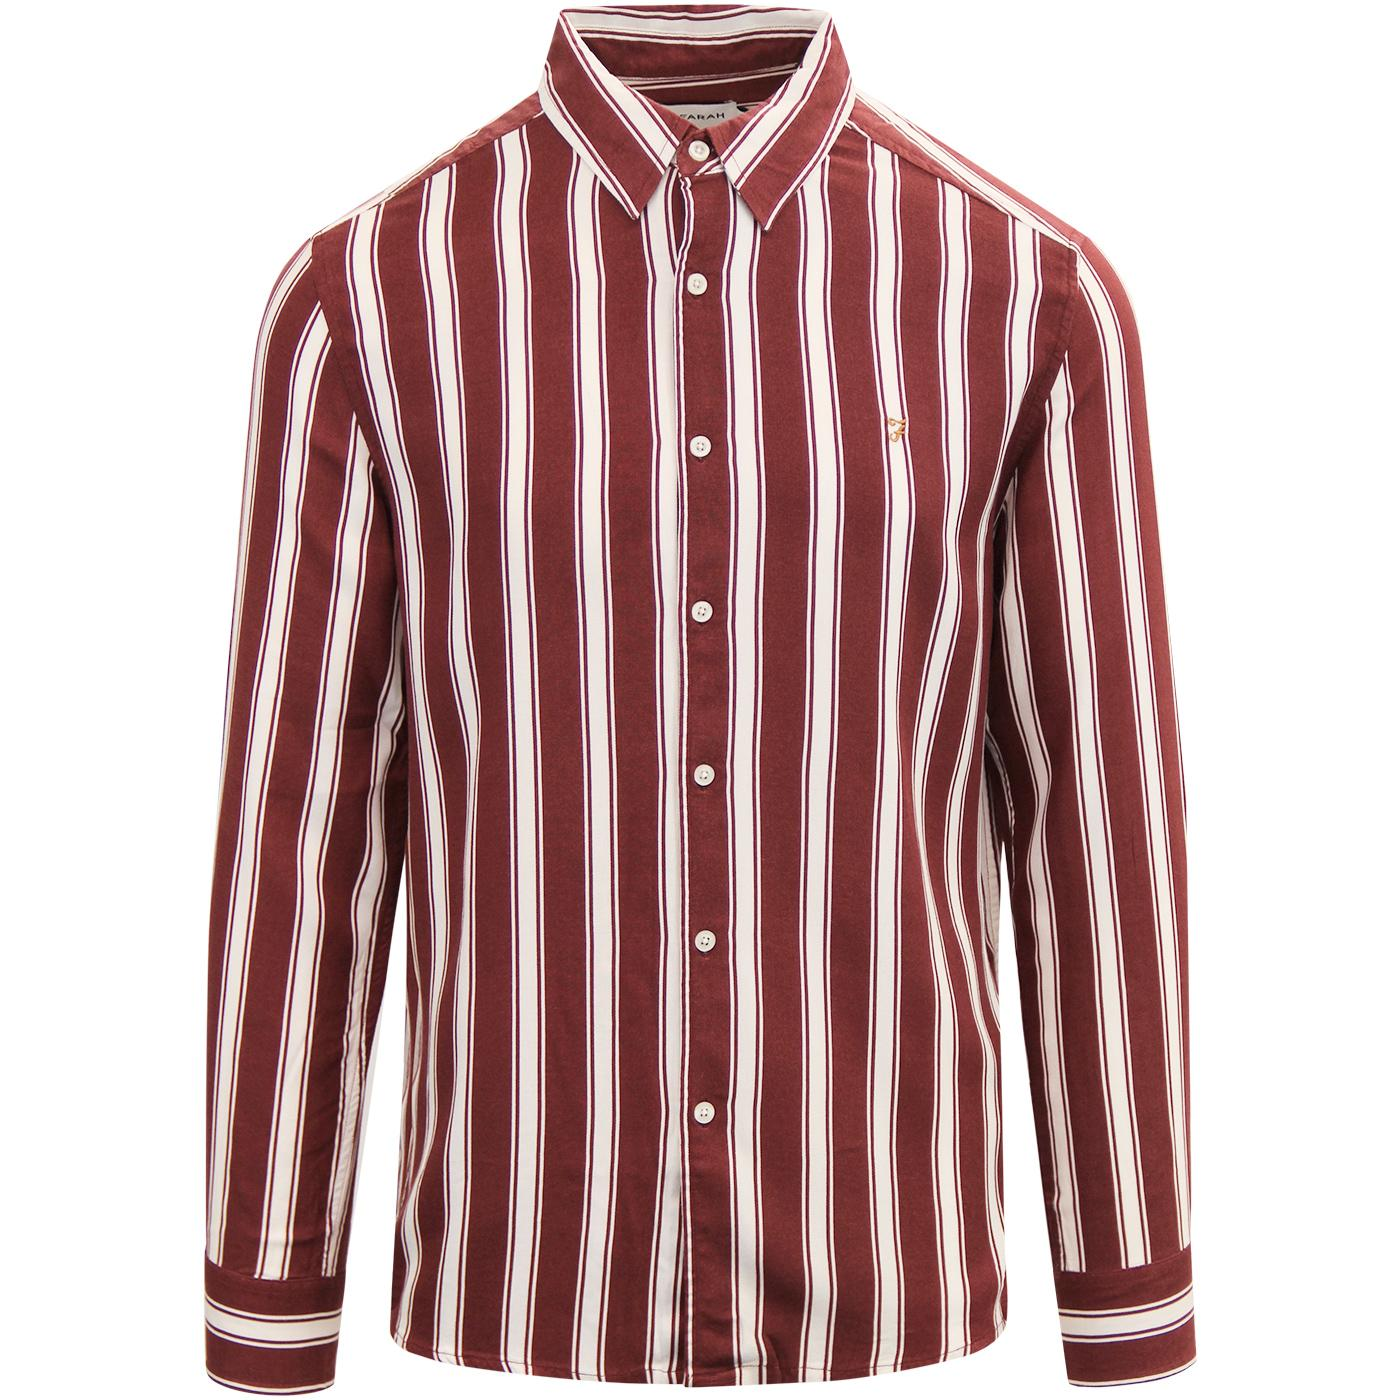 Evison FARAH Retro Mod Casual Fit Stripe Shirt BR